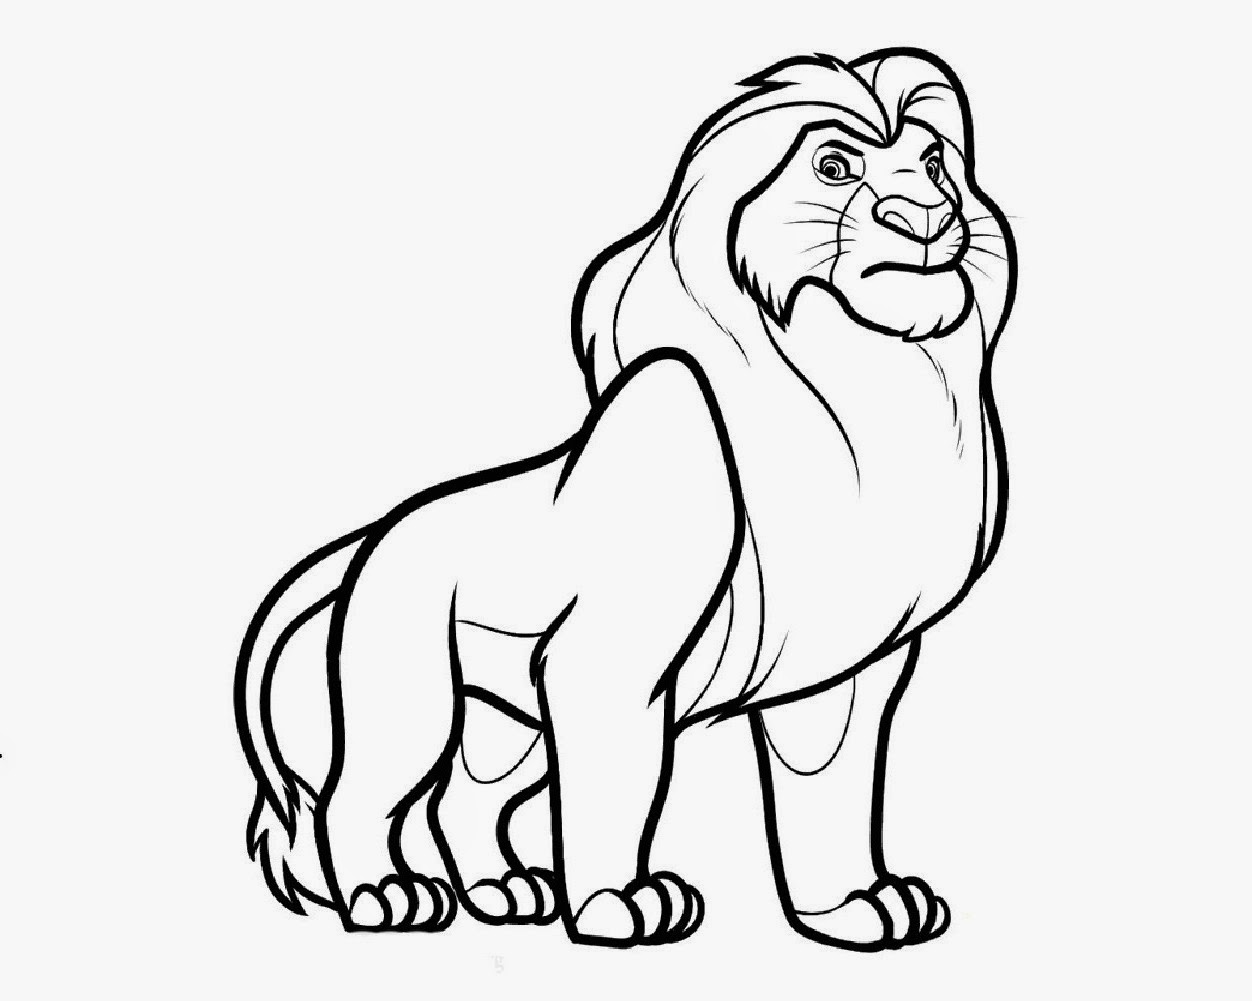 King Line Drawing Disney Cartoon The Lion King